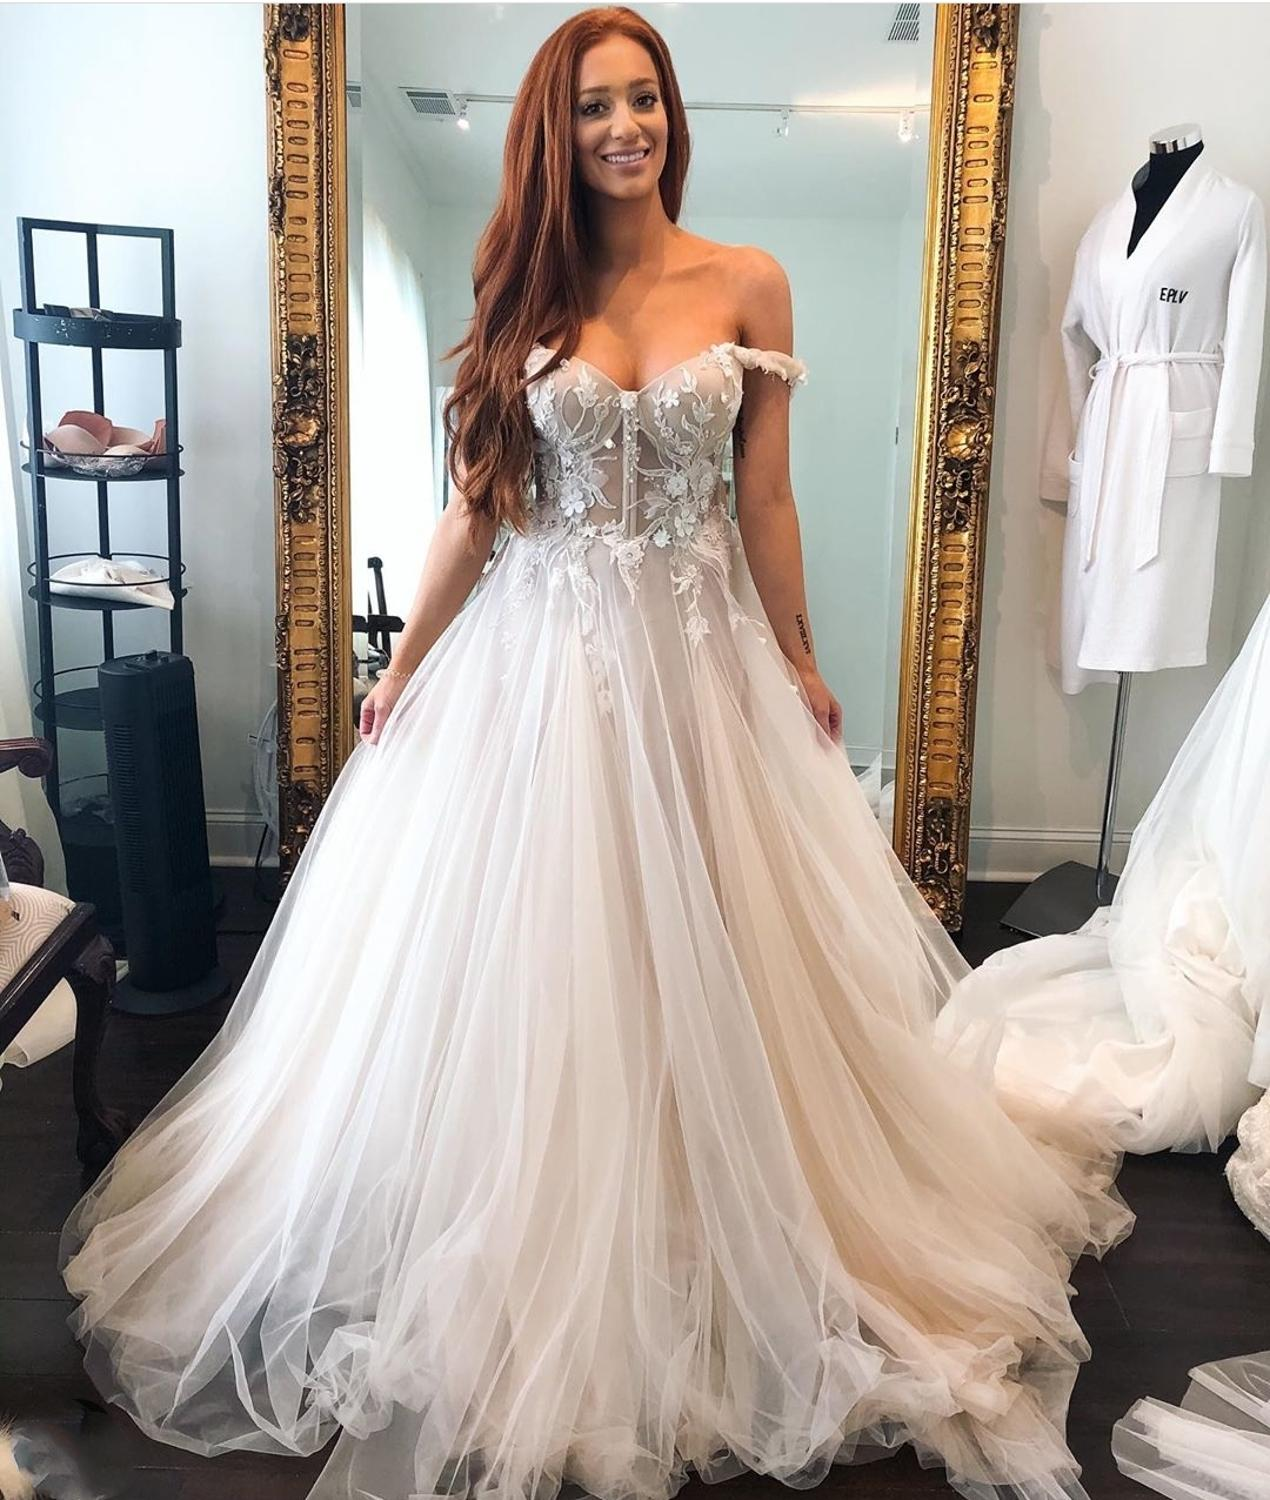 Off Shoulder Wedding dress 2021  With Sleeve A-Line Lace Appliques Sweetheart Brilliant Court TrianWomen Brides Tulle Gorgeous